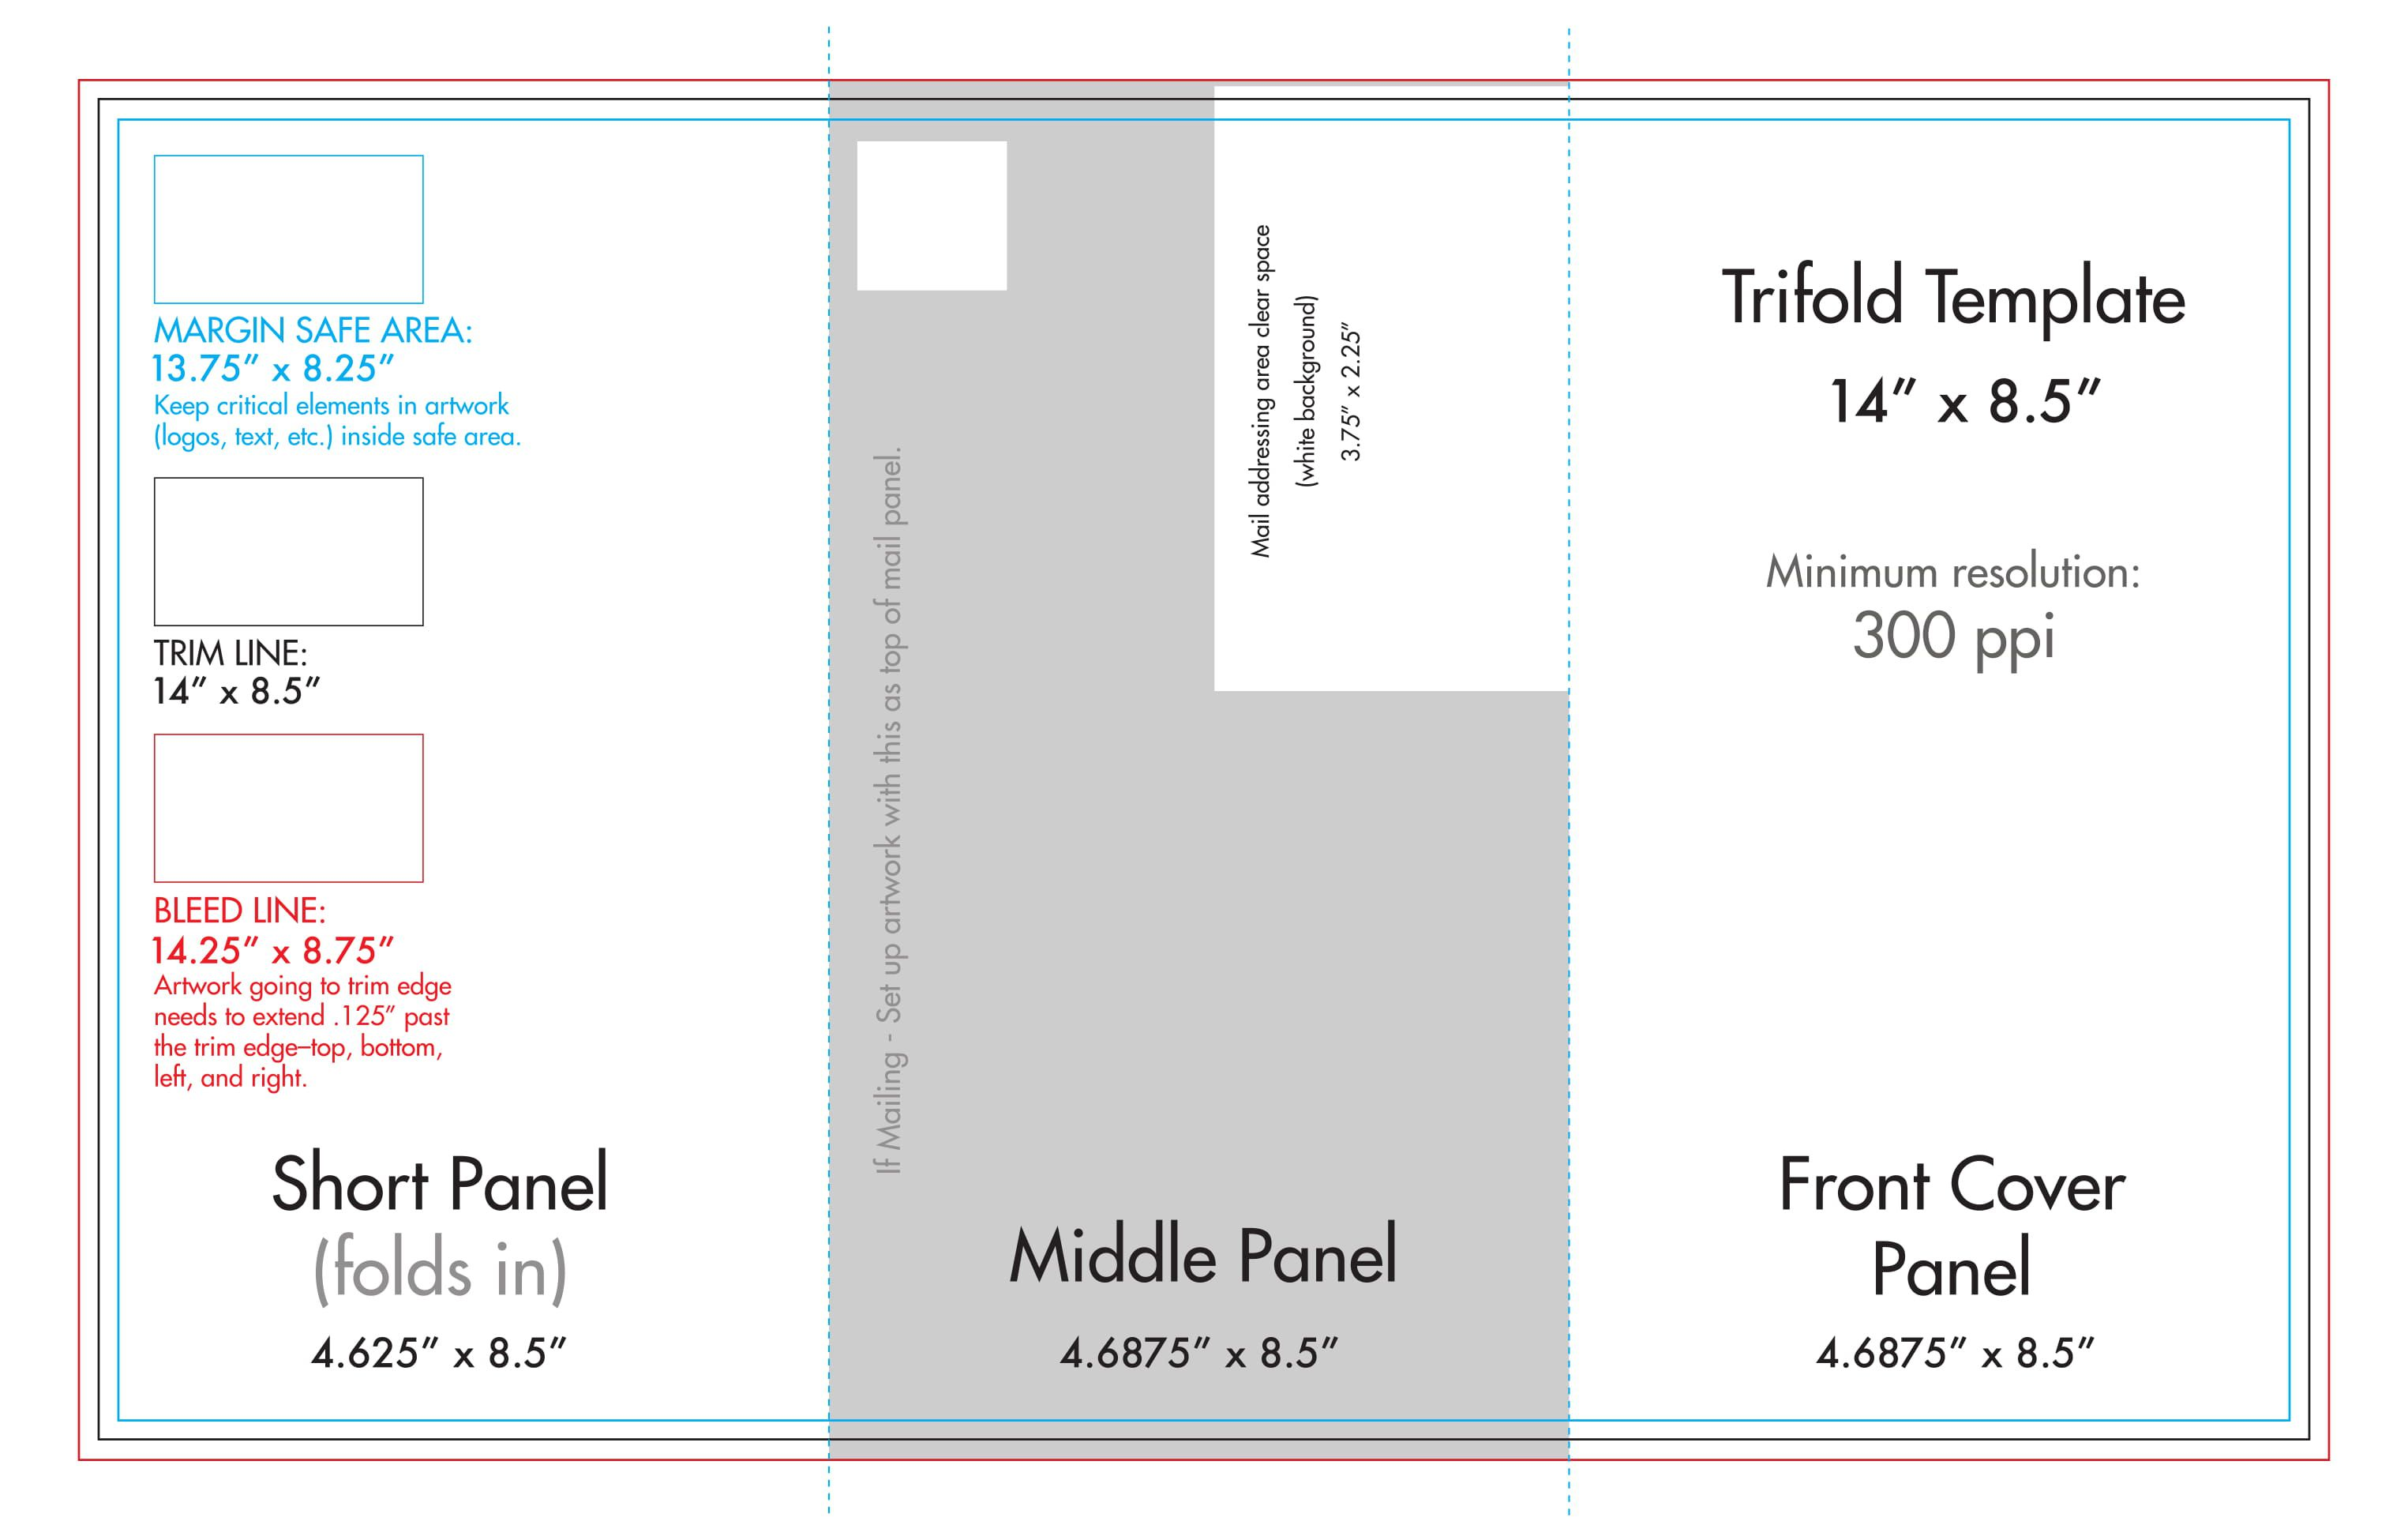 008 Fascinating Tri Fold Brochure Indesign Template Concept  Free AdobeFull